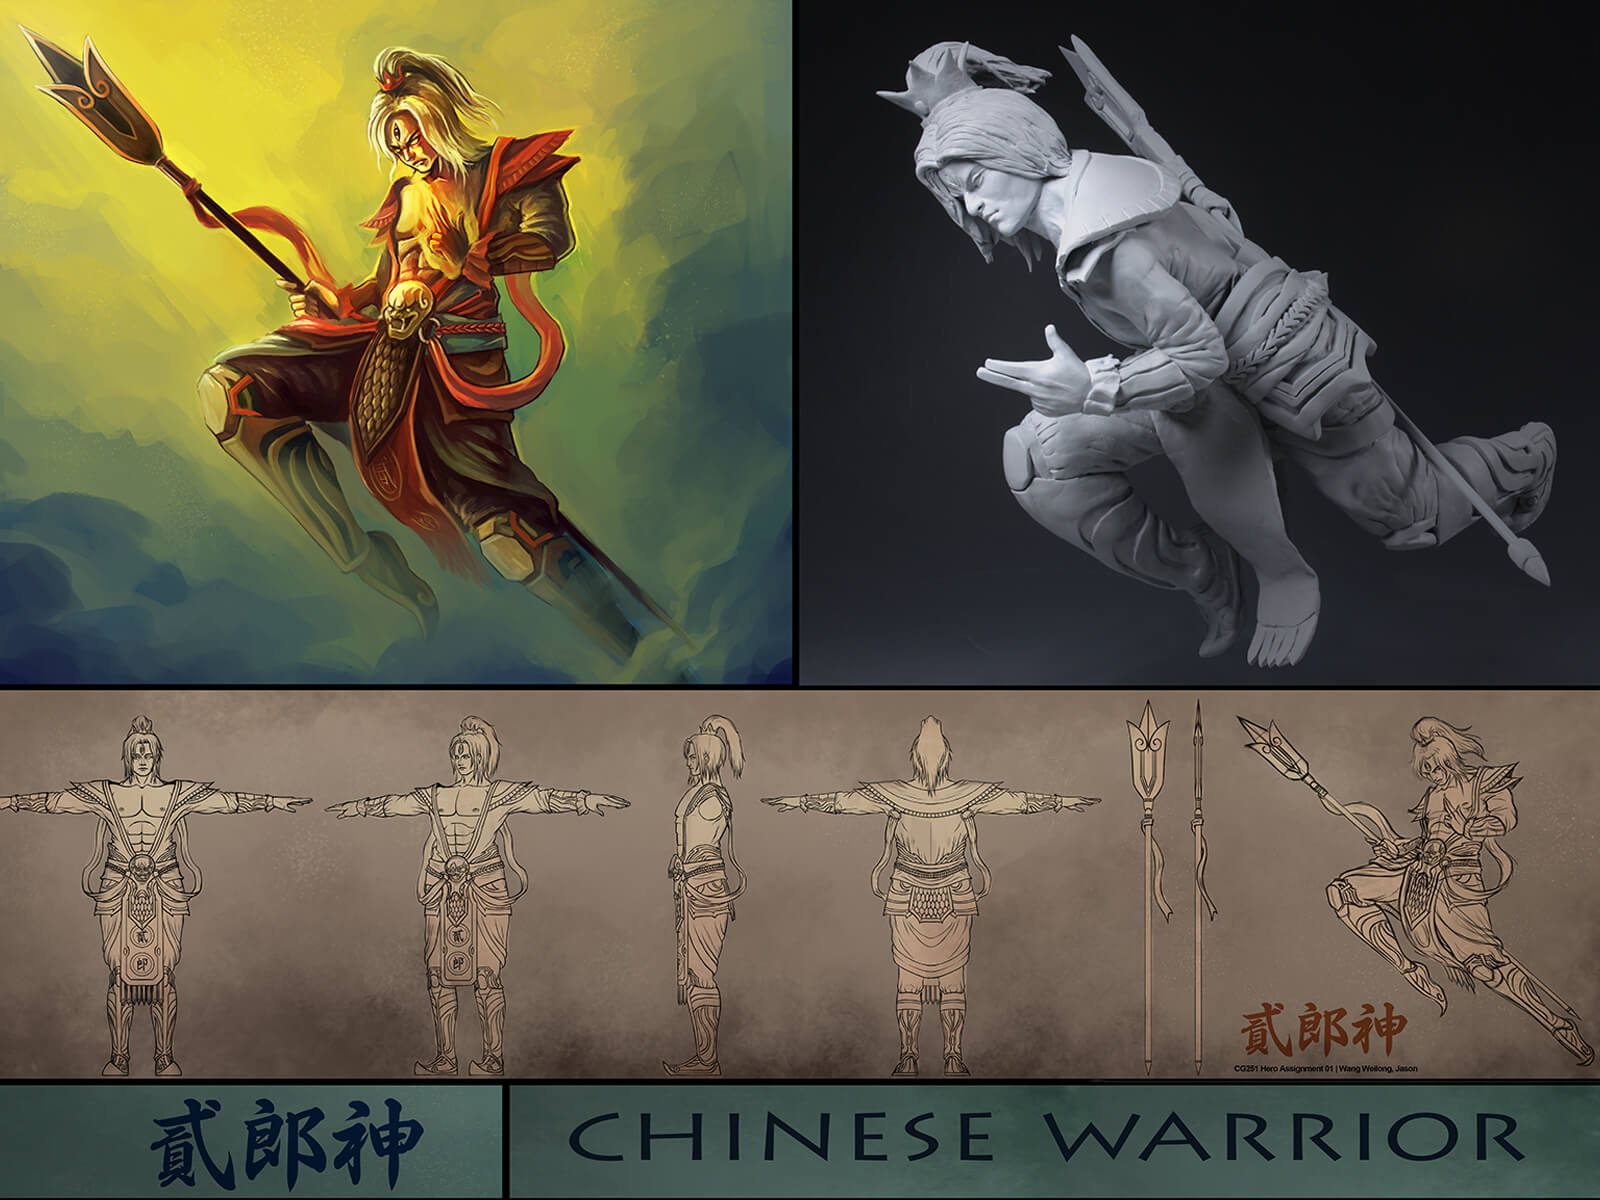 Turnaround character sketches, and 3D- and 2D-model of an ancient Chinese warrior holding an elaborate spear.